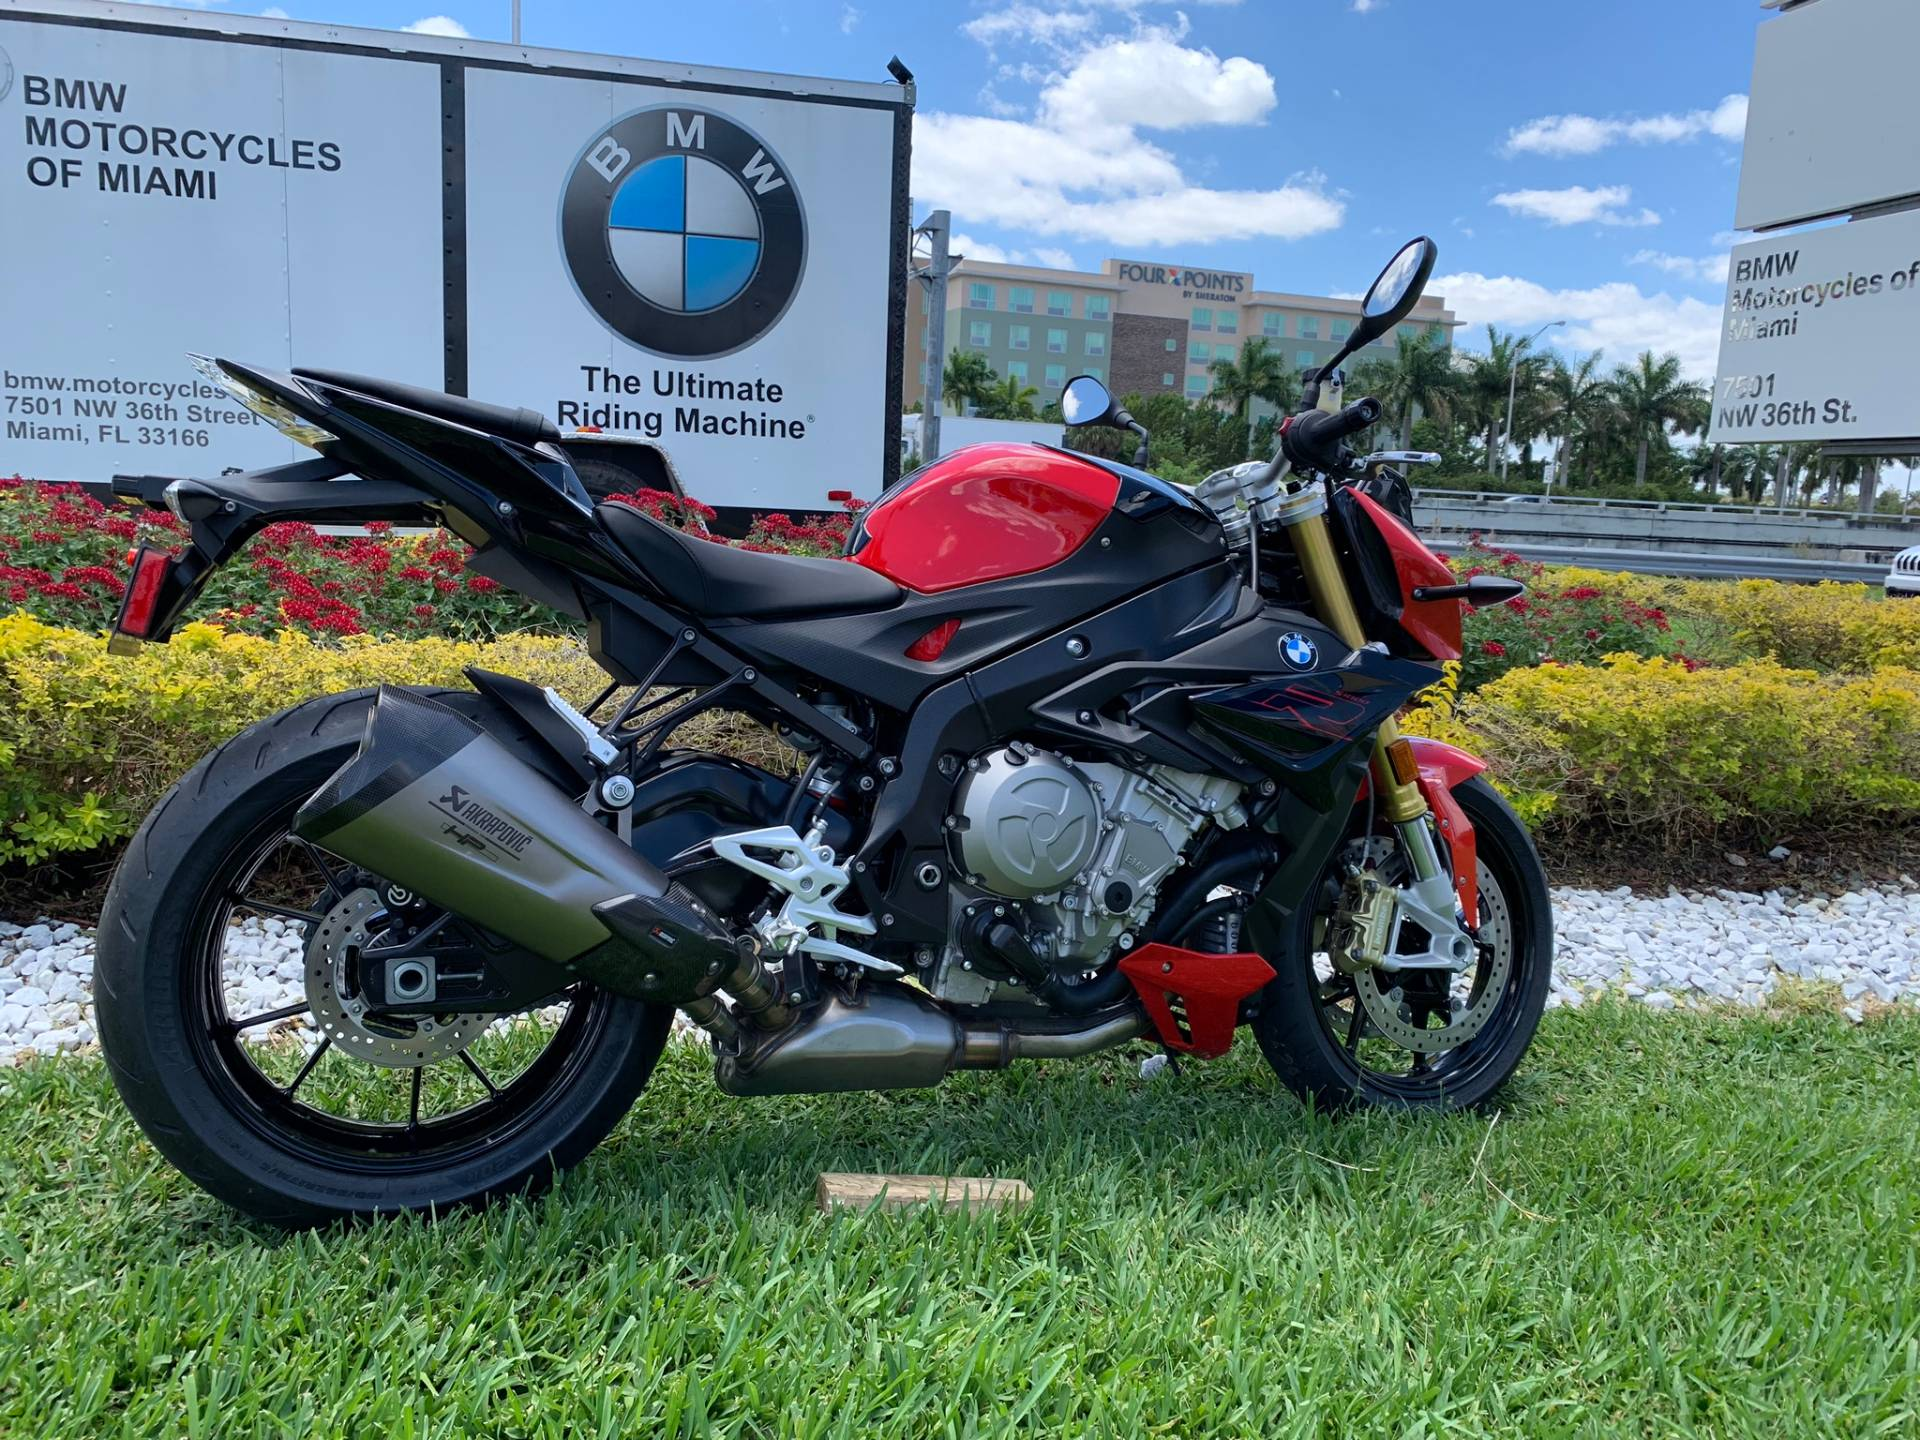 New 2019 BMW S 1000 R for sale, BMW S 1000R for sale, BMW Motorcycle S1000R, new BMW R, Sport, roadster, naked. BMW Motorcycles of Miami, Motorcycles of Miami, Motorcycles Miami, New Motorcycles, Used Motorcycles, pre-owned. #BMWMotorcyclesOfMiami #MotorcyclesOfMiami #MotorcyclesMiami - Photo 21